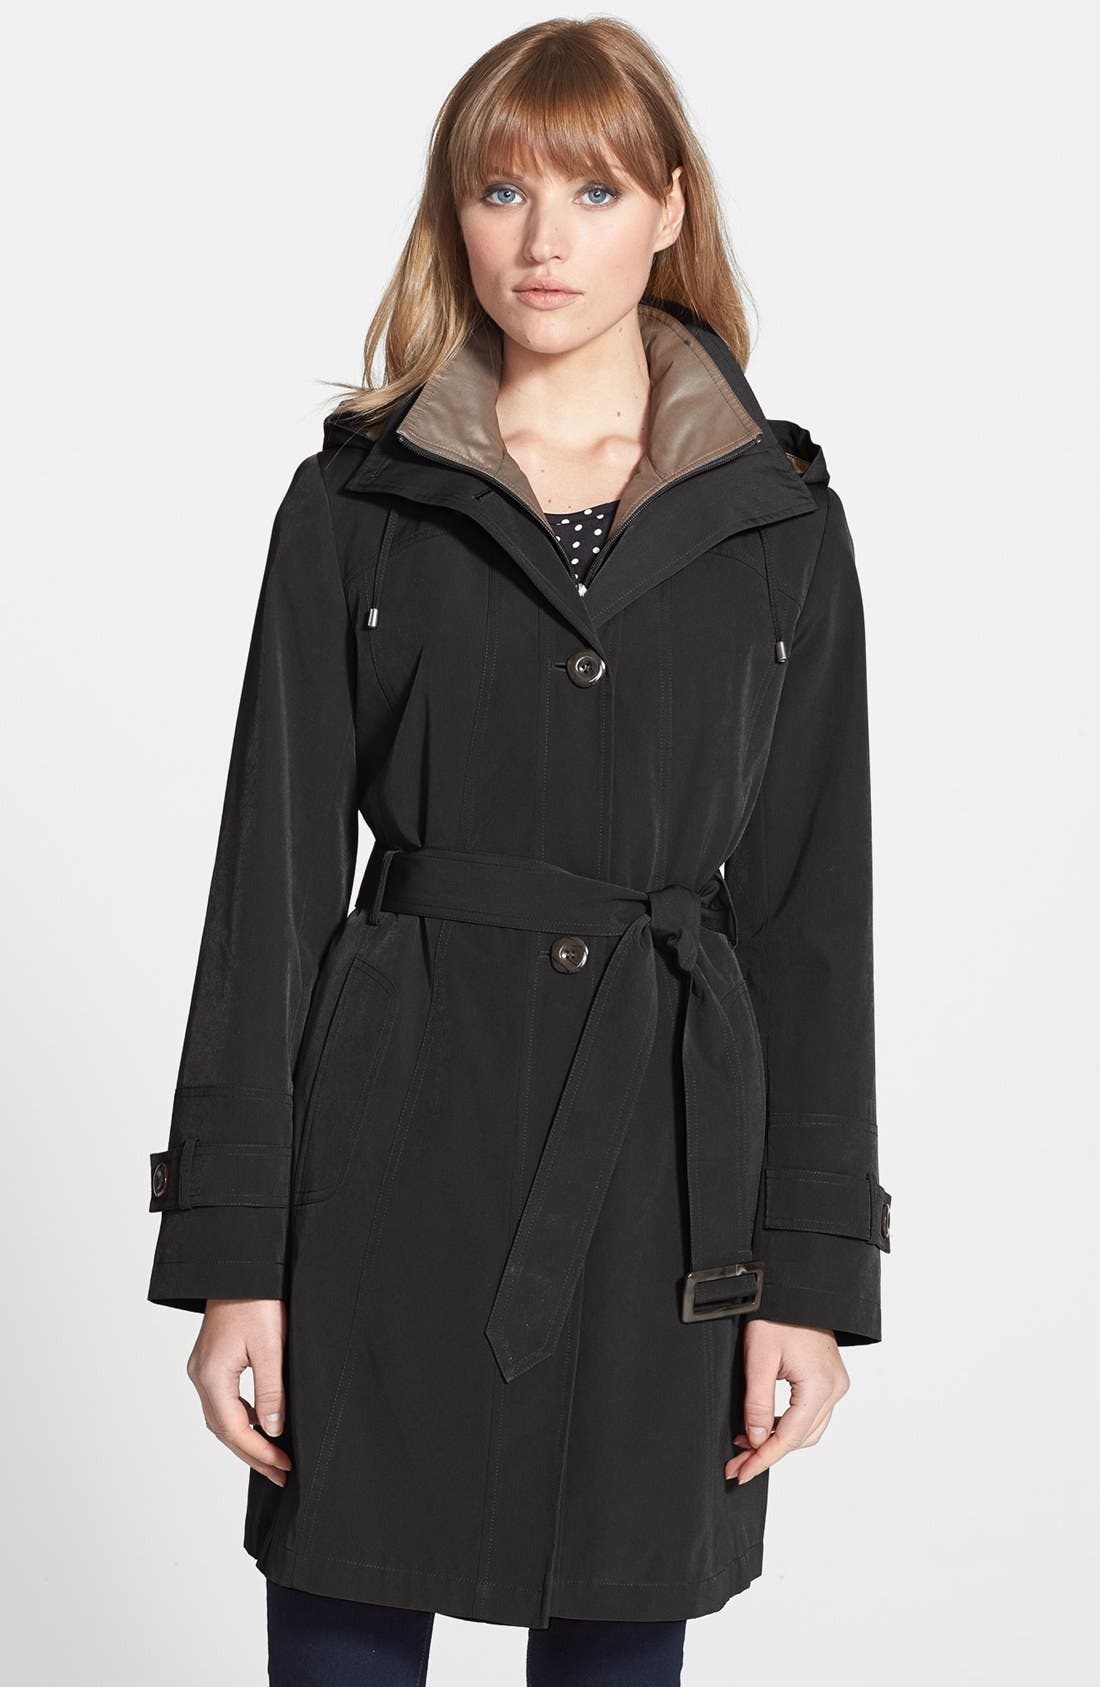 Main Image - Gallery Two-Tone Belted Walking Coat with Detachable Hood (Regular & Petite) (Online Only)